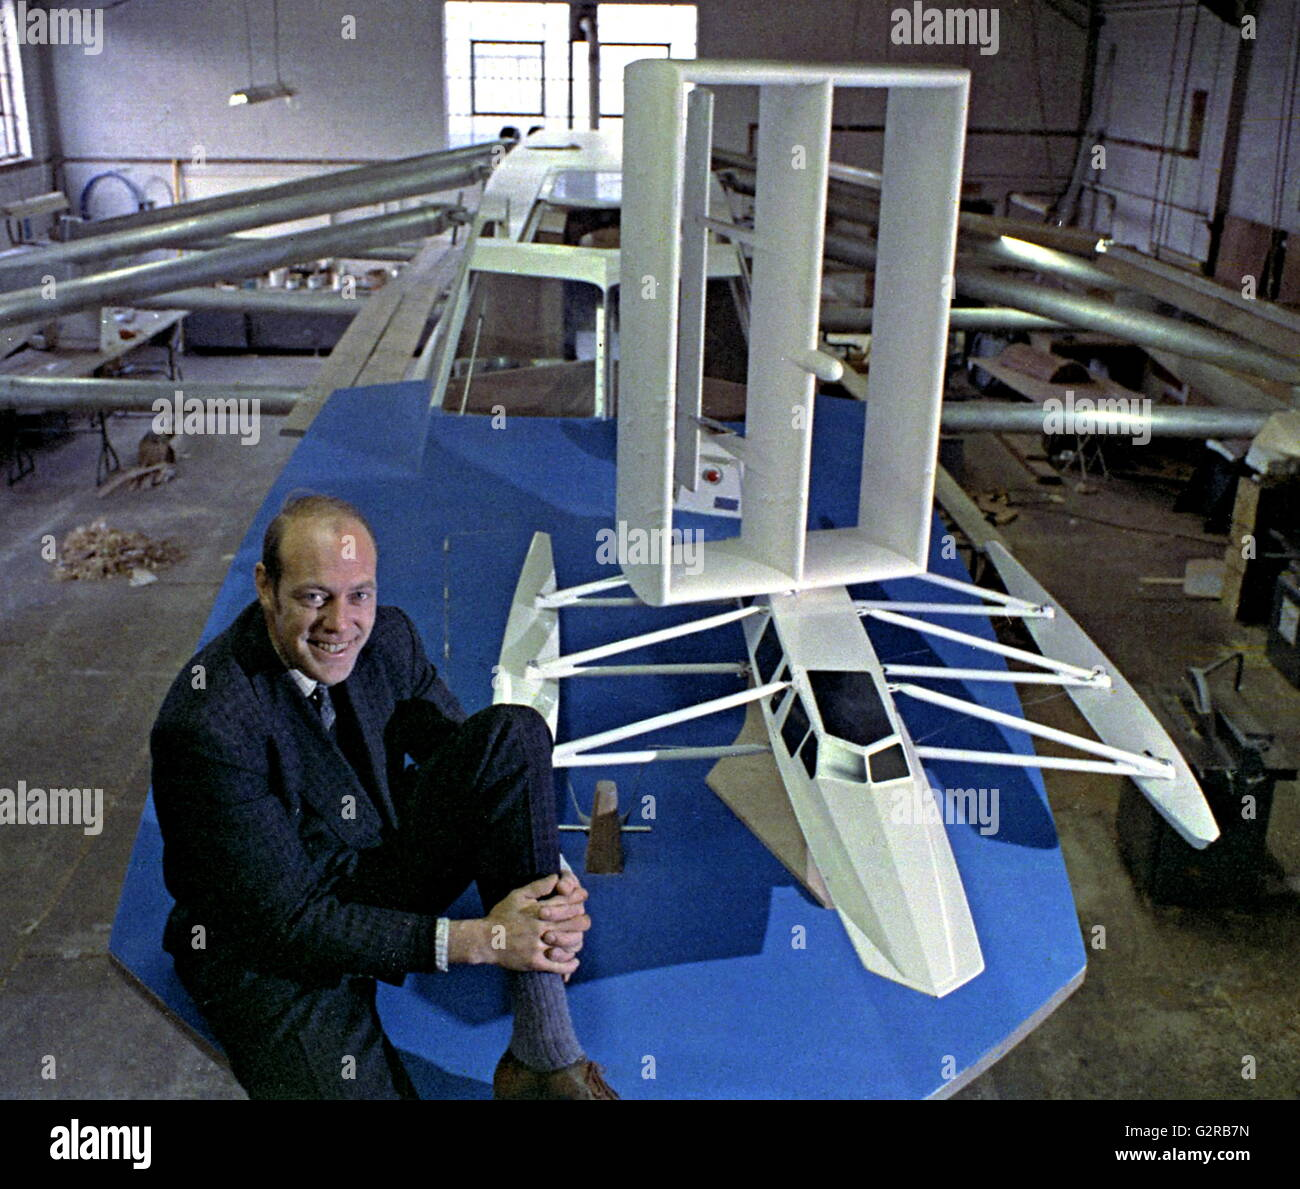 AJAXNETPHOTO. 20TH OCTOBER, 1970. PORTSMOUTH, ENGLAND. - PLANESAIL HITS THE BUFFERS - PLANESAIL LTD COMPANY DIRECTOR - Stock Image